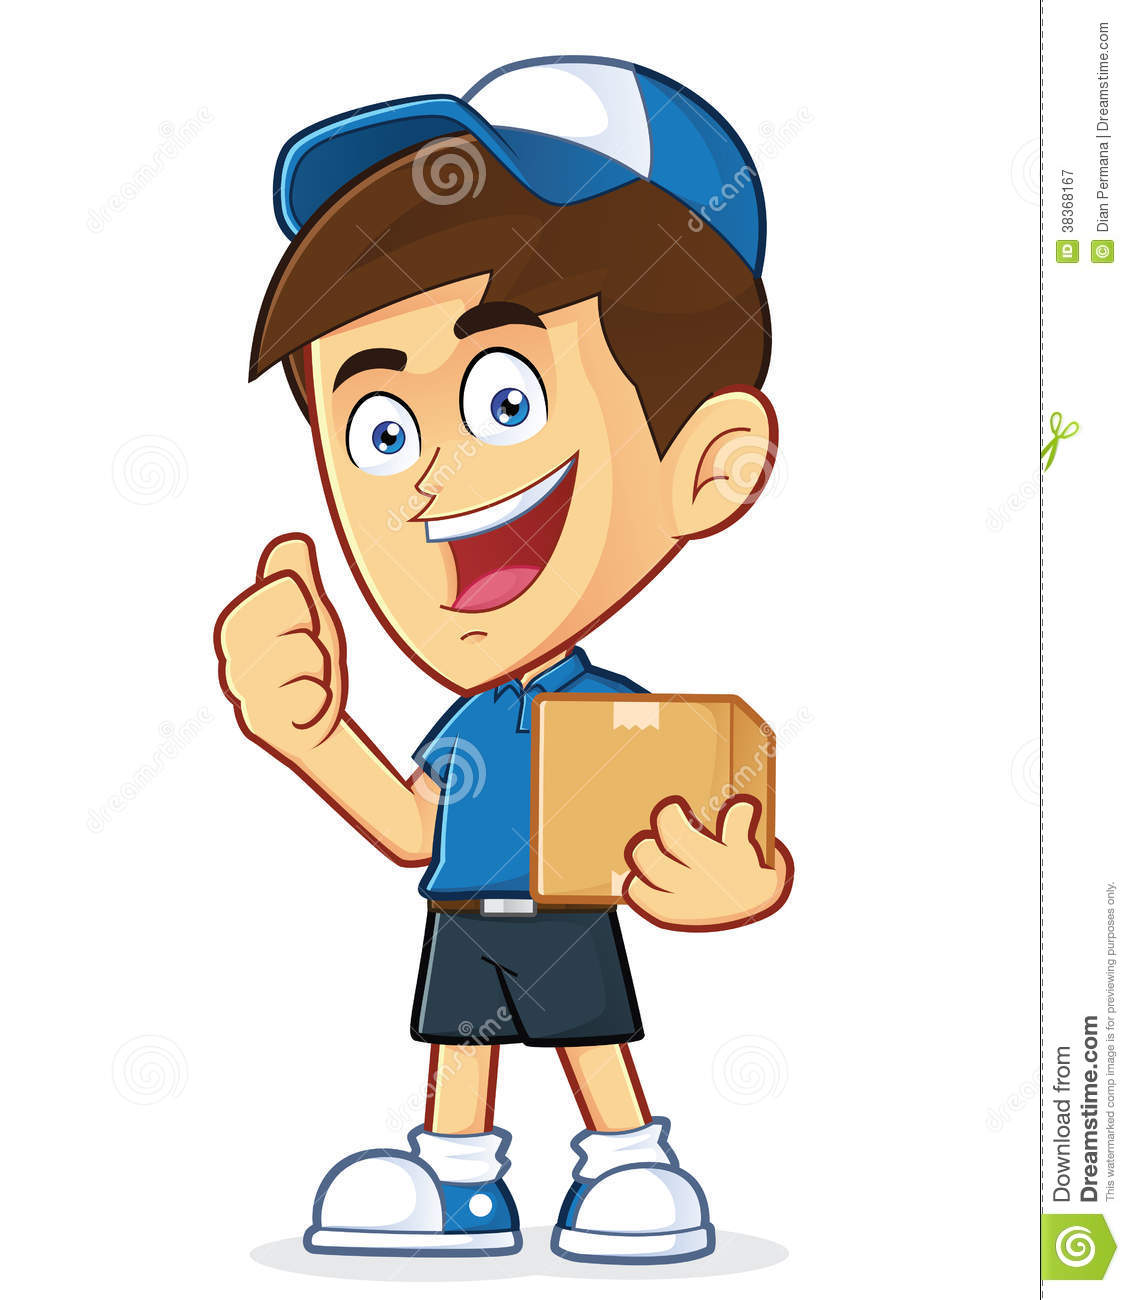 clipart delivery man - photo #20